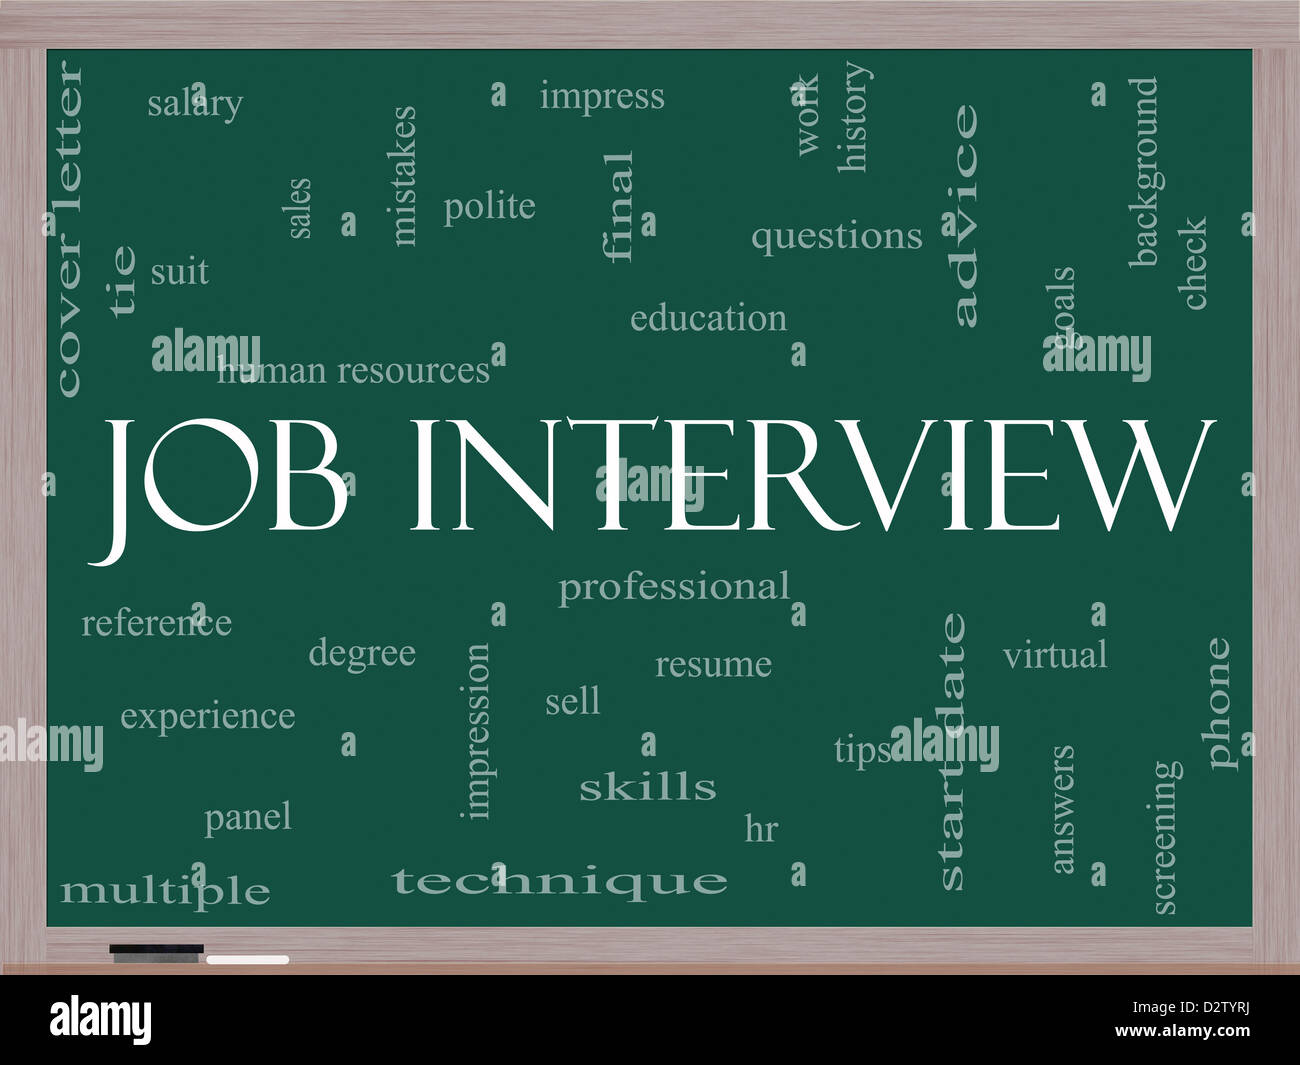 job interview word cloud concept on a blackboard with great terms